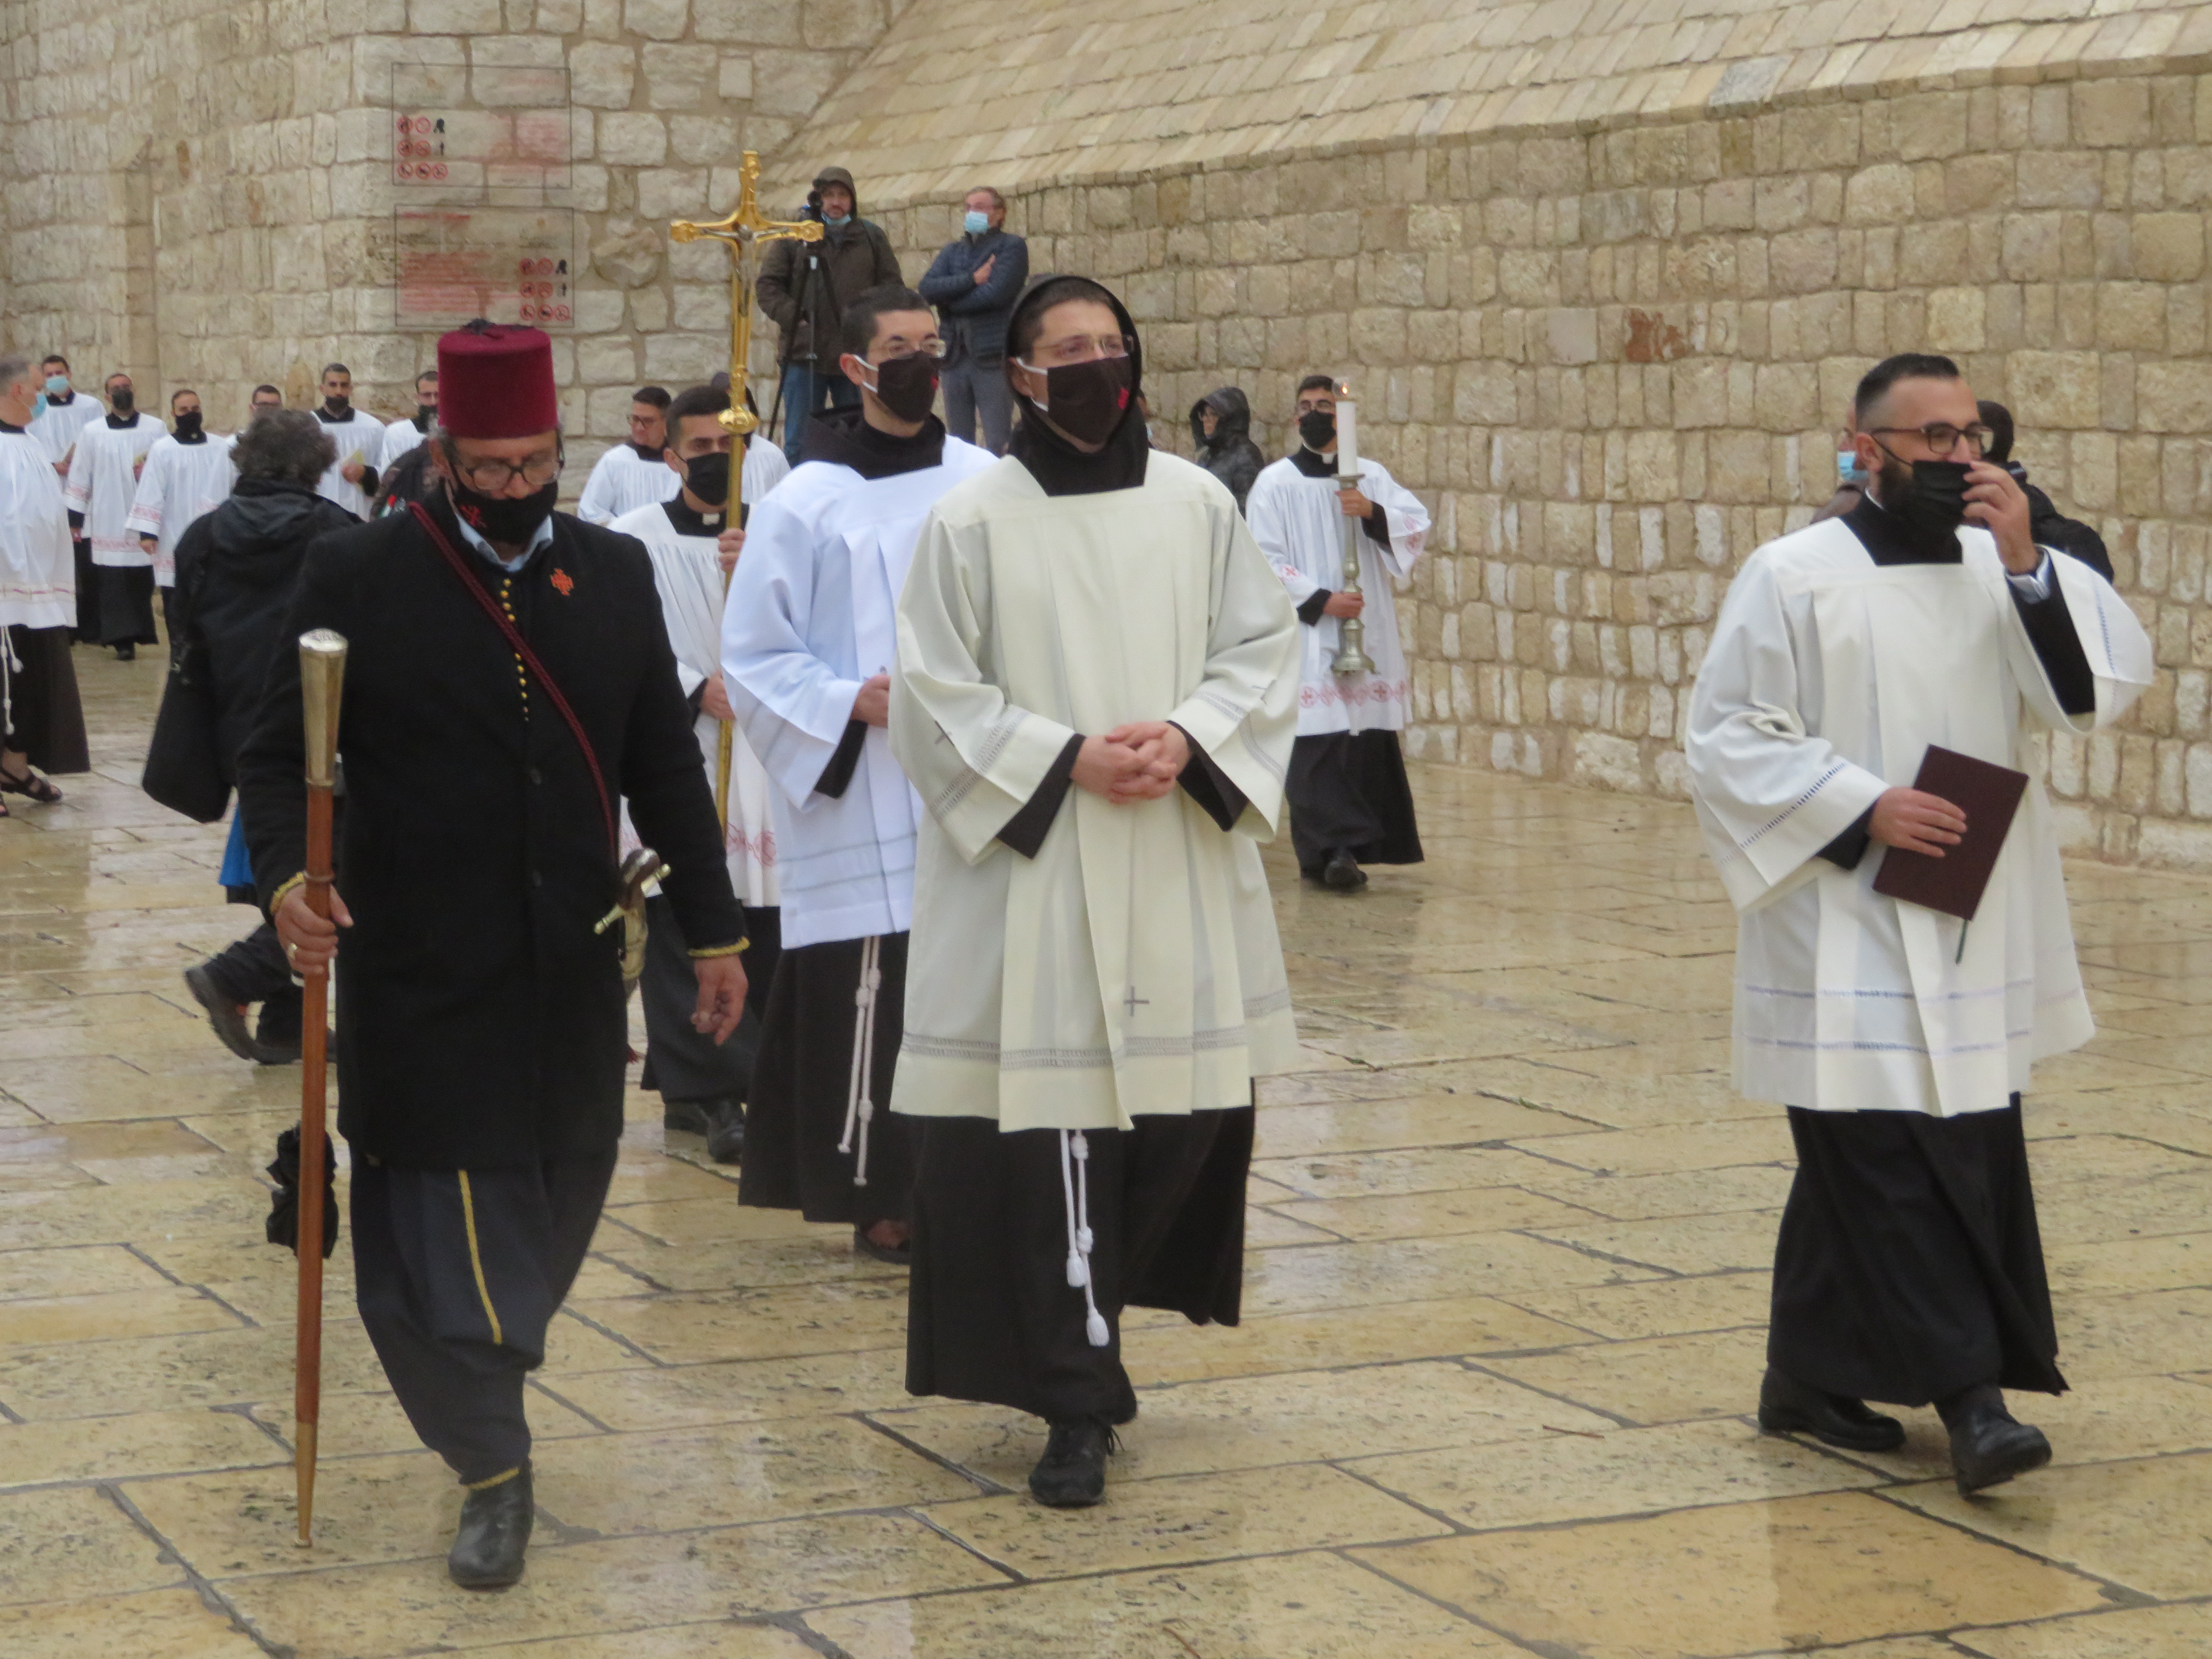 The start of the Franciscan Procession, from the Church of the Nativity to Manger Square on Christmas Eve